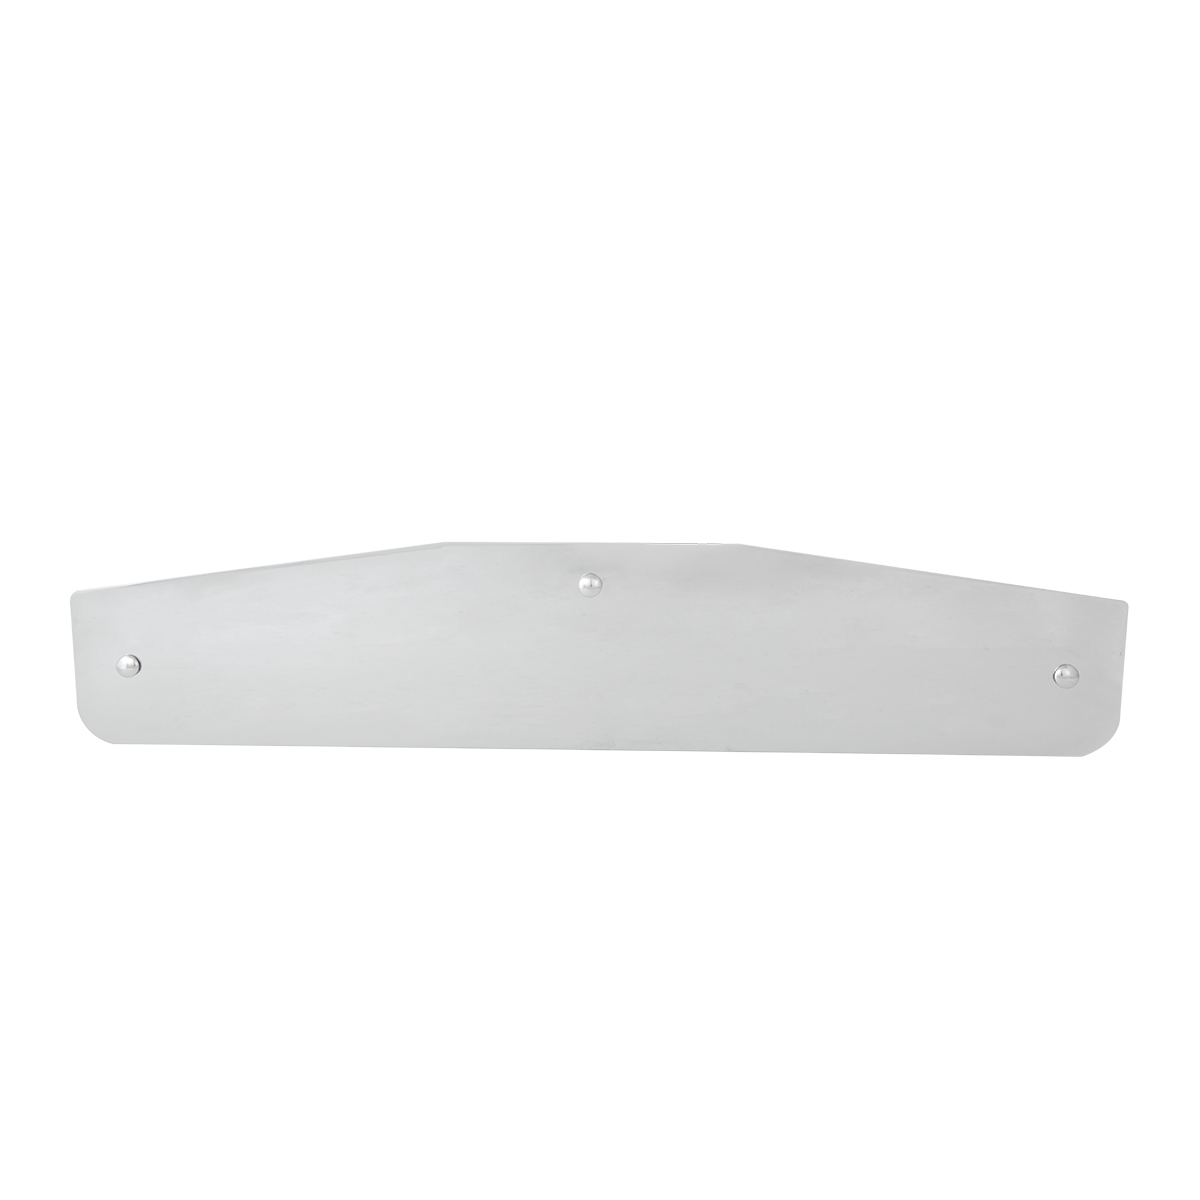 "30288 Extra 5"" Tall Bottom Mud Flap Plate with 3 Holes"